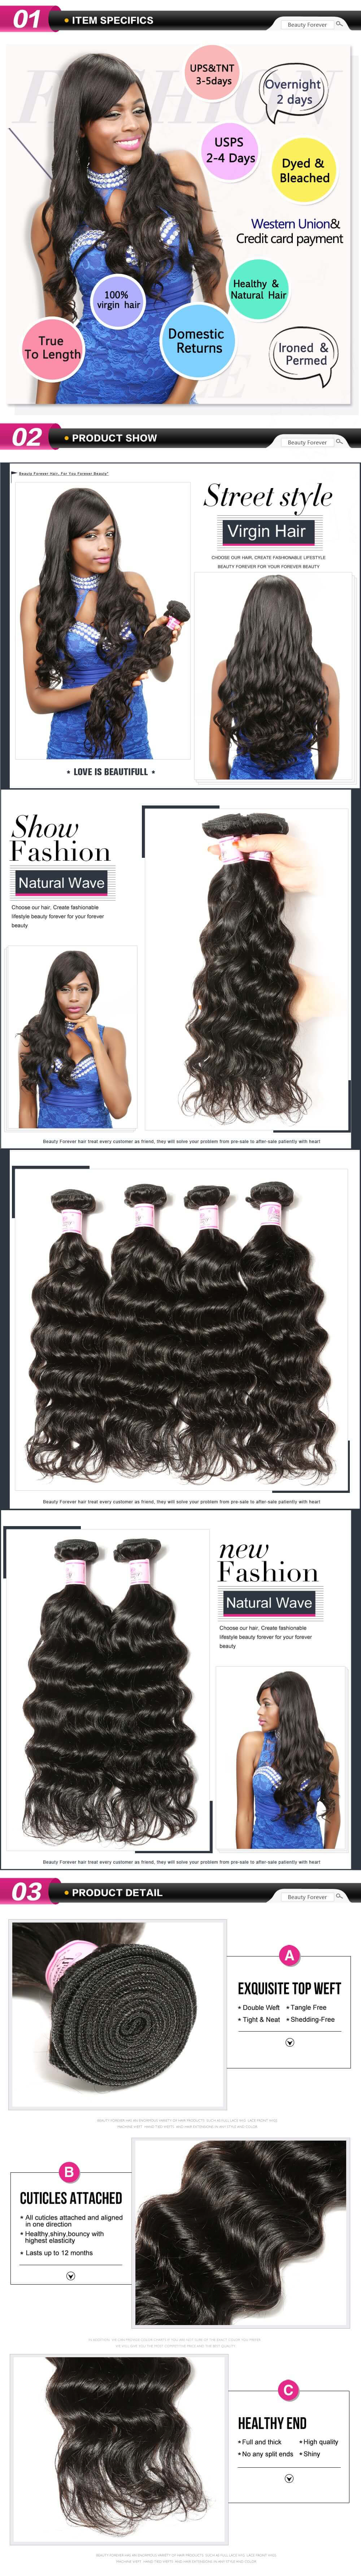 Brazilian Natural Wave Hair 4Bundles